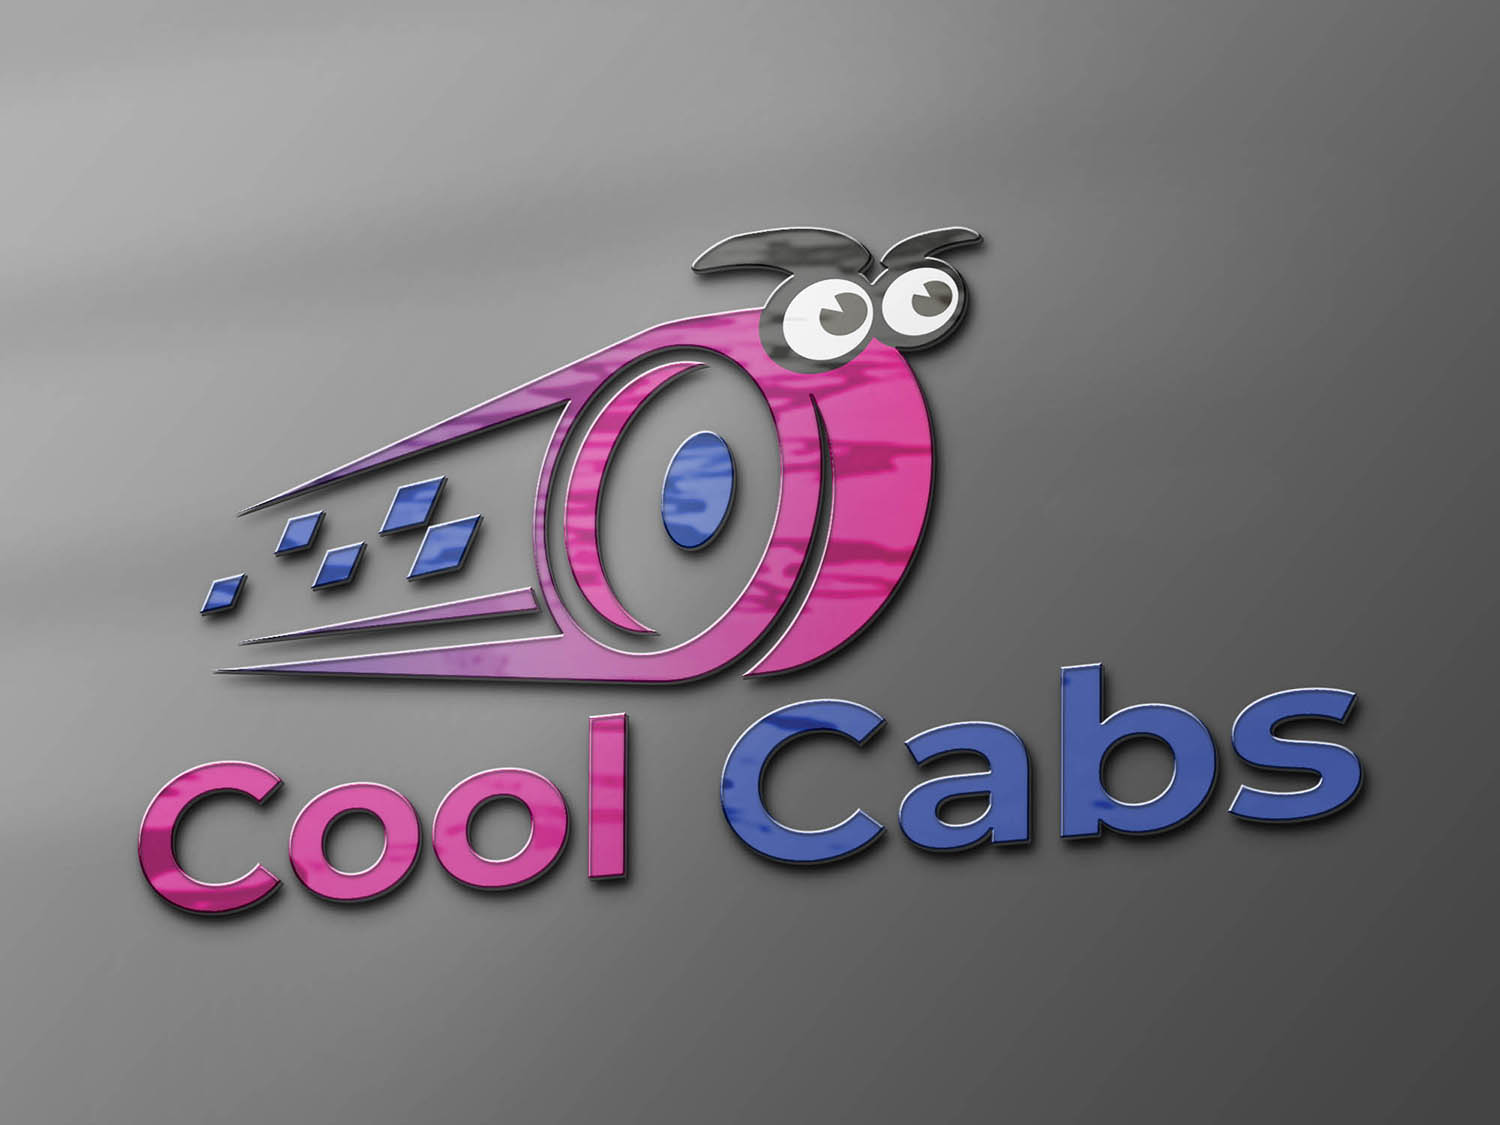 Cool Cabs Musselburgh Website Design Case study Affordable Private Hire & Taxi Websites